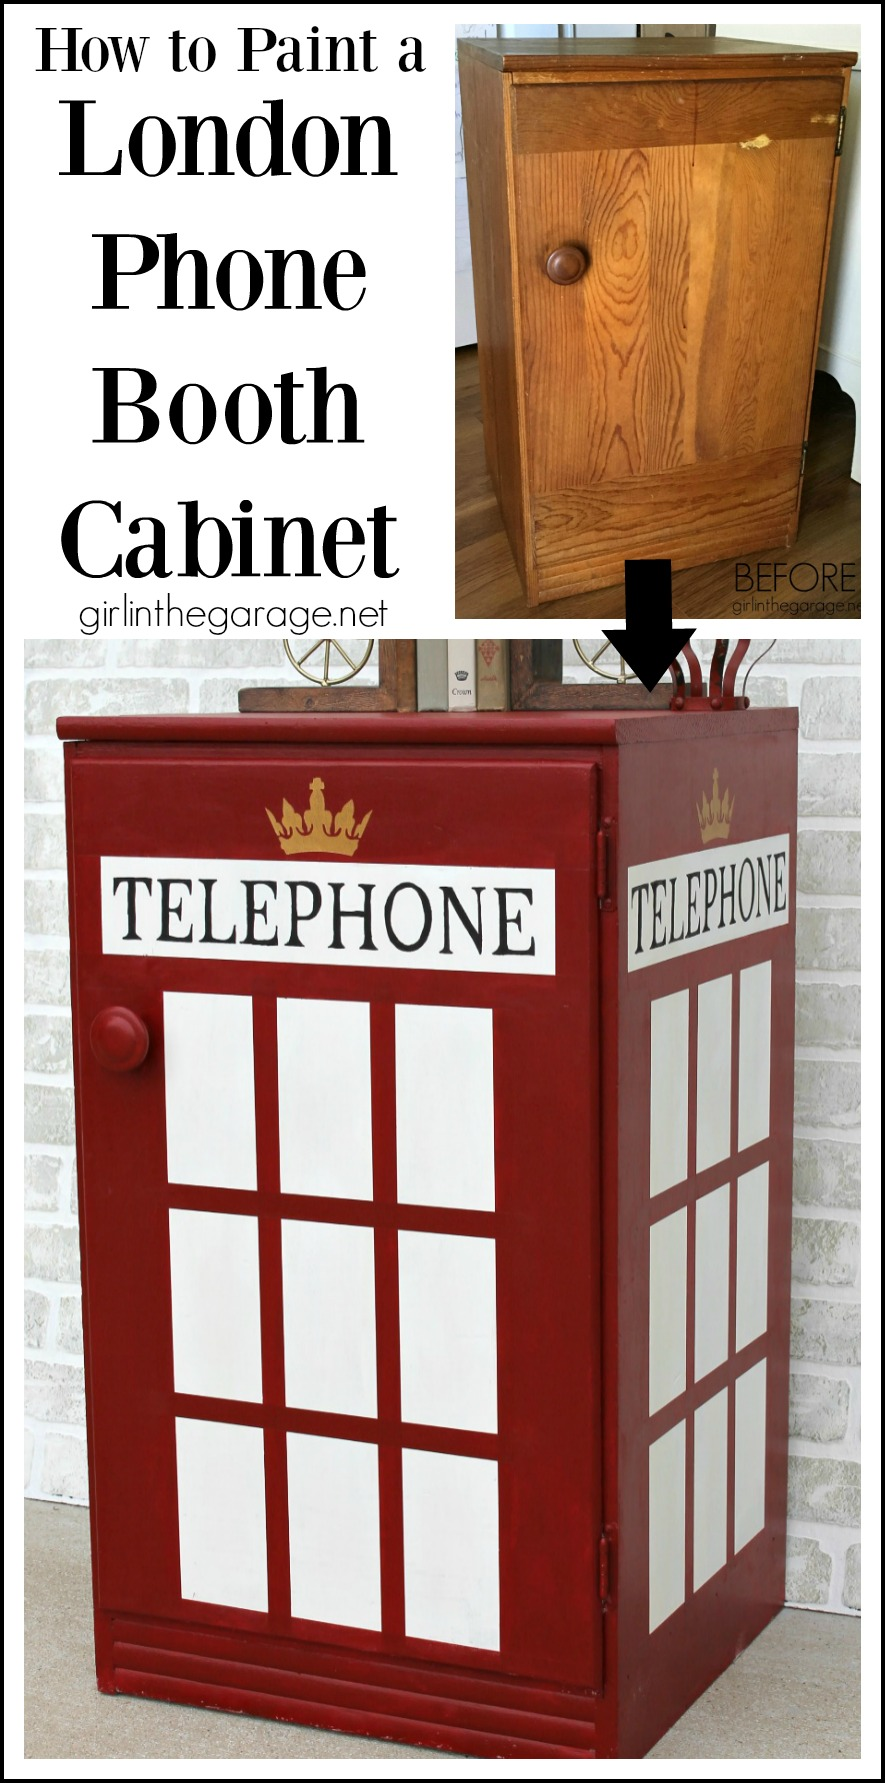 Surprising How To Paint London Phone Booth Cabinet Girl In The Garage Download Free Architecture Designs Scobabritishbridgeorg